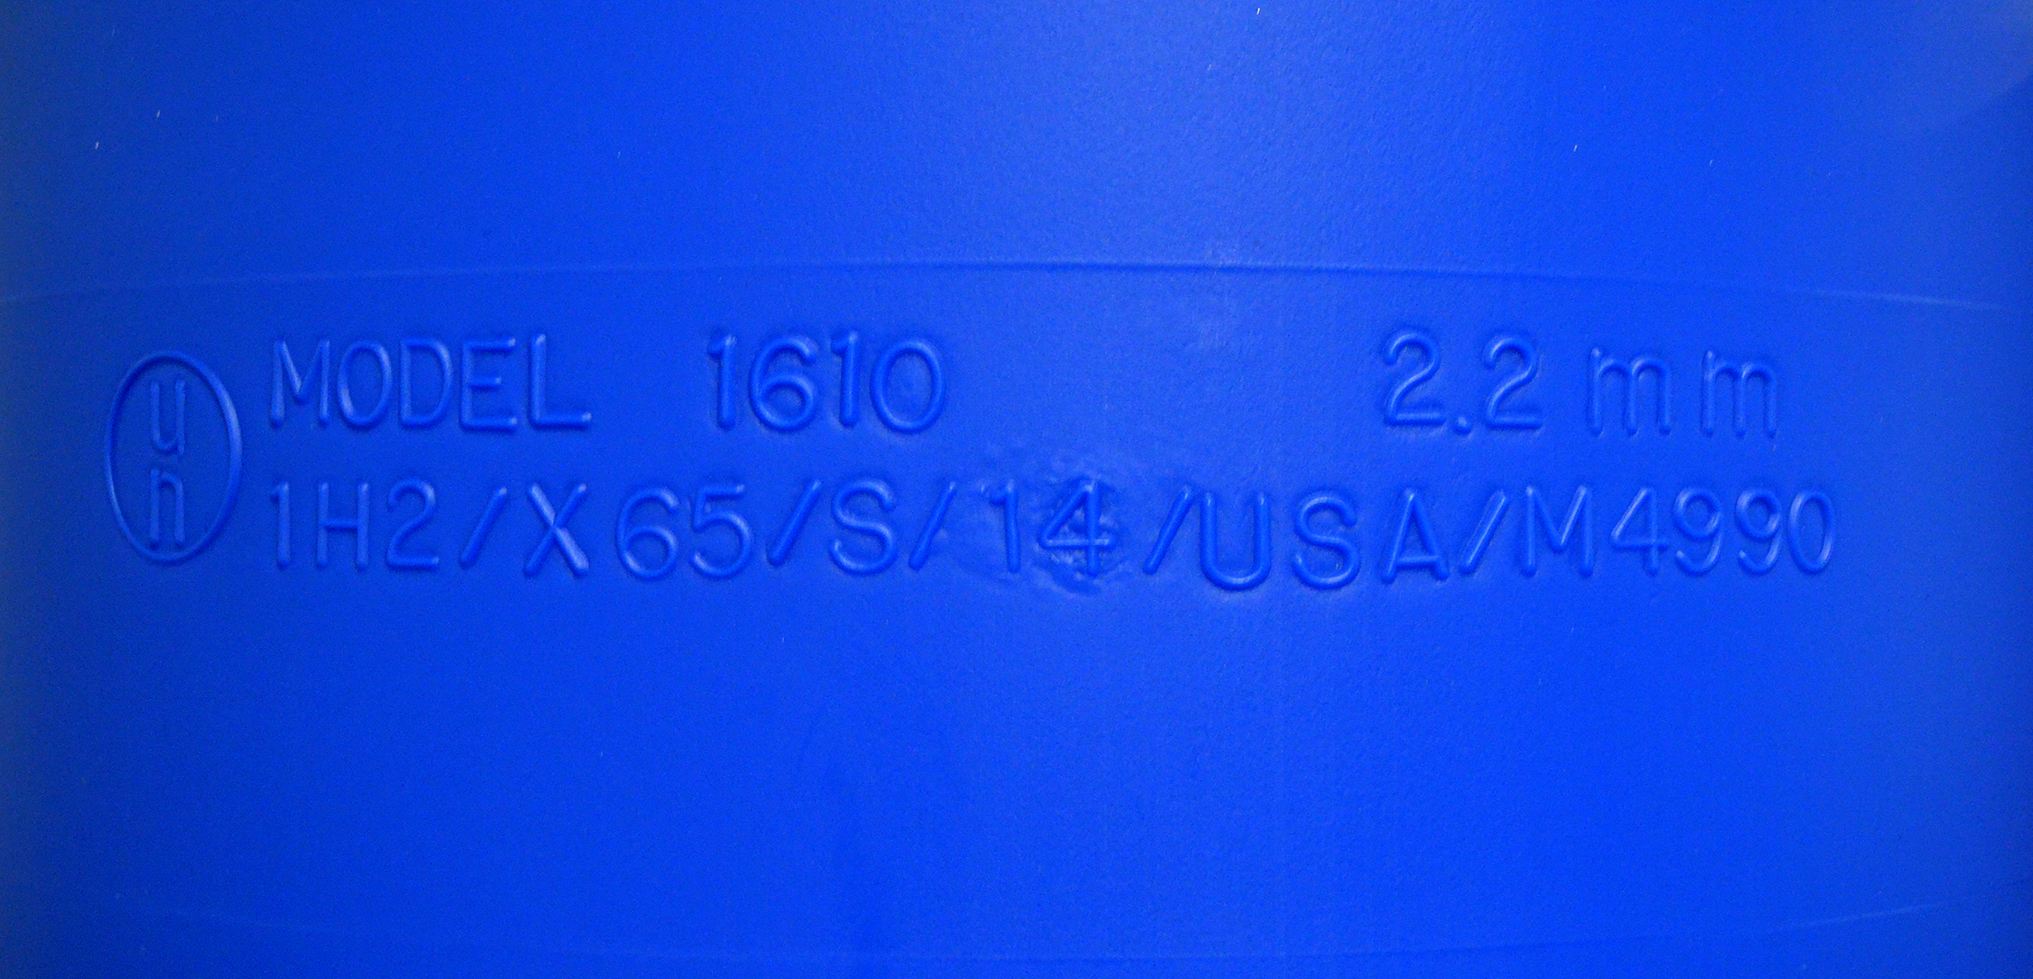 UN Packaging Code embossed on Drum